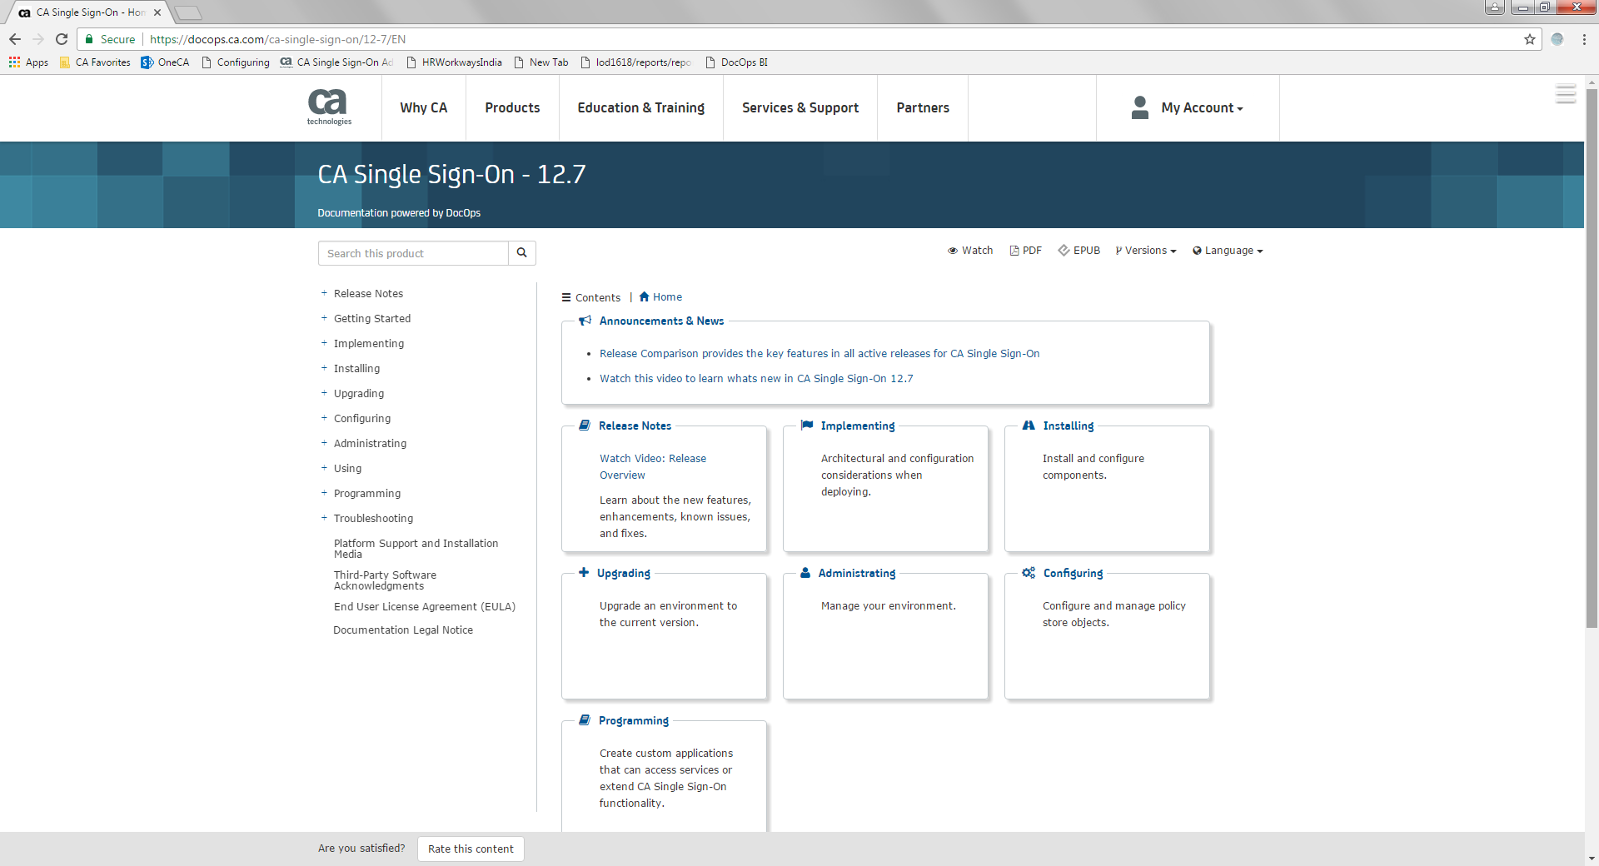 CA SSO12.7 documentation home page